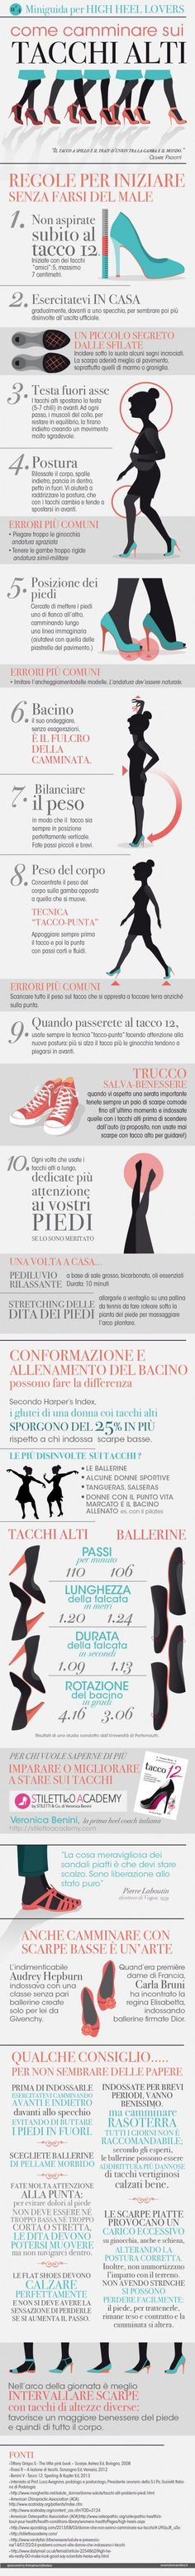 Miniguida per High Heels Lovers: come camminare